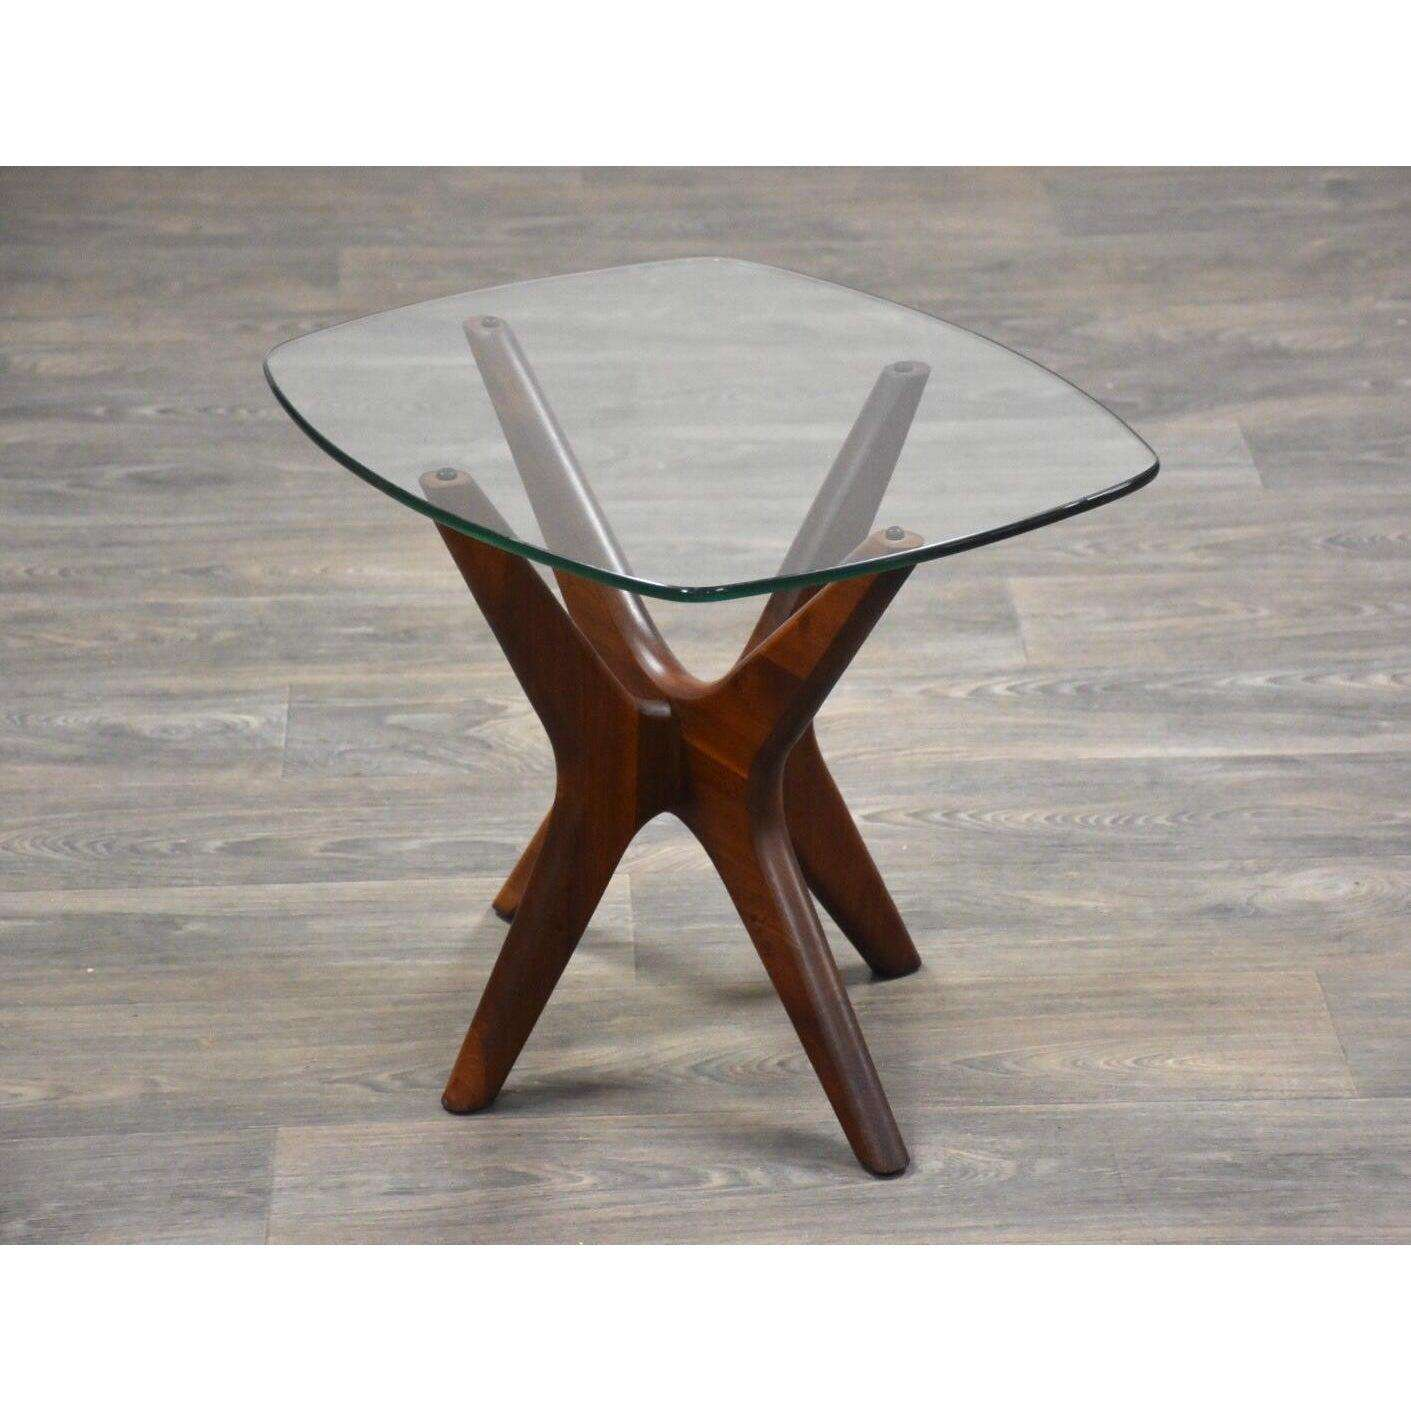 Adrian Pearsall Jacks Walnut And Glass End Table Mid Century Modern Mixed Modern Furniture Mid Century Furniture Dealer